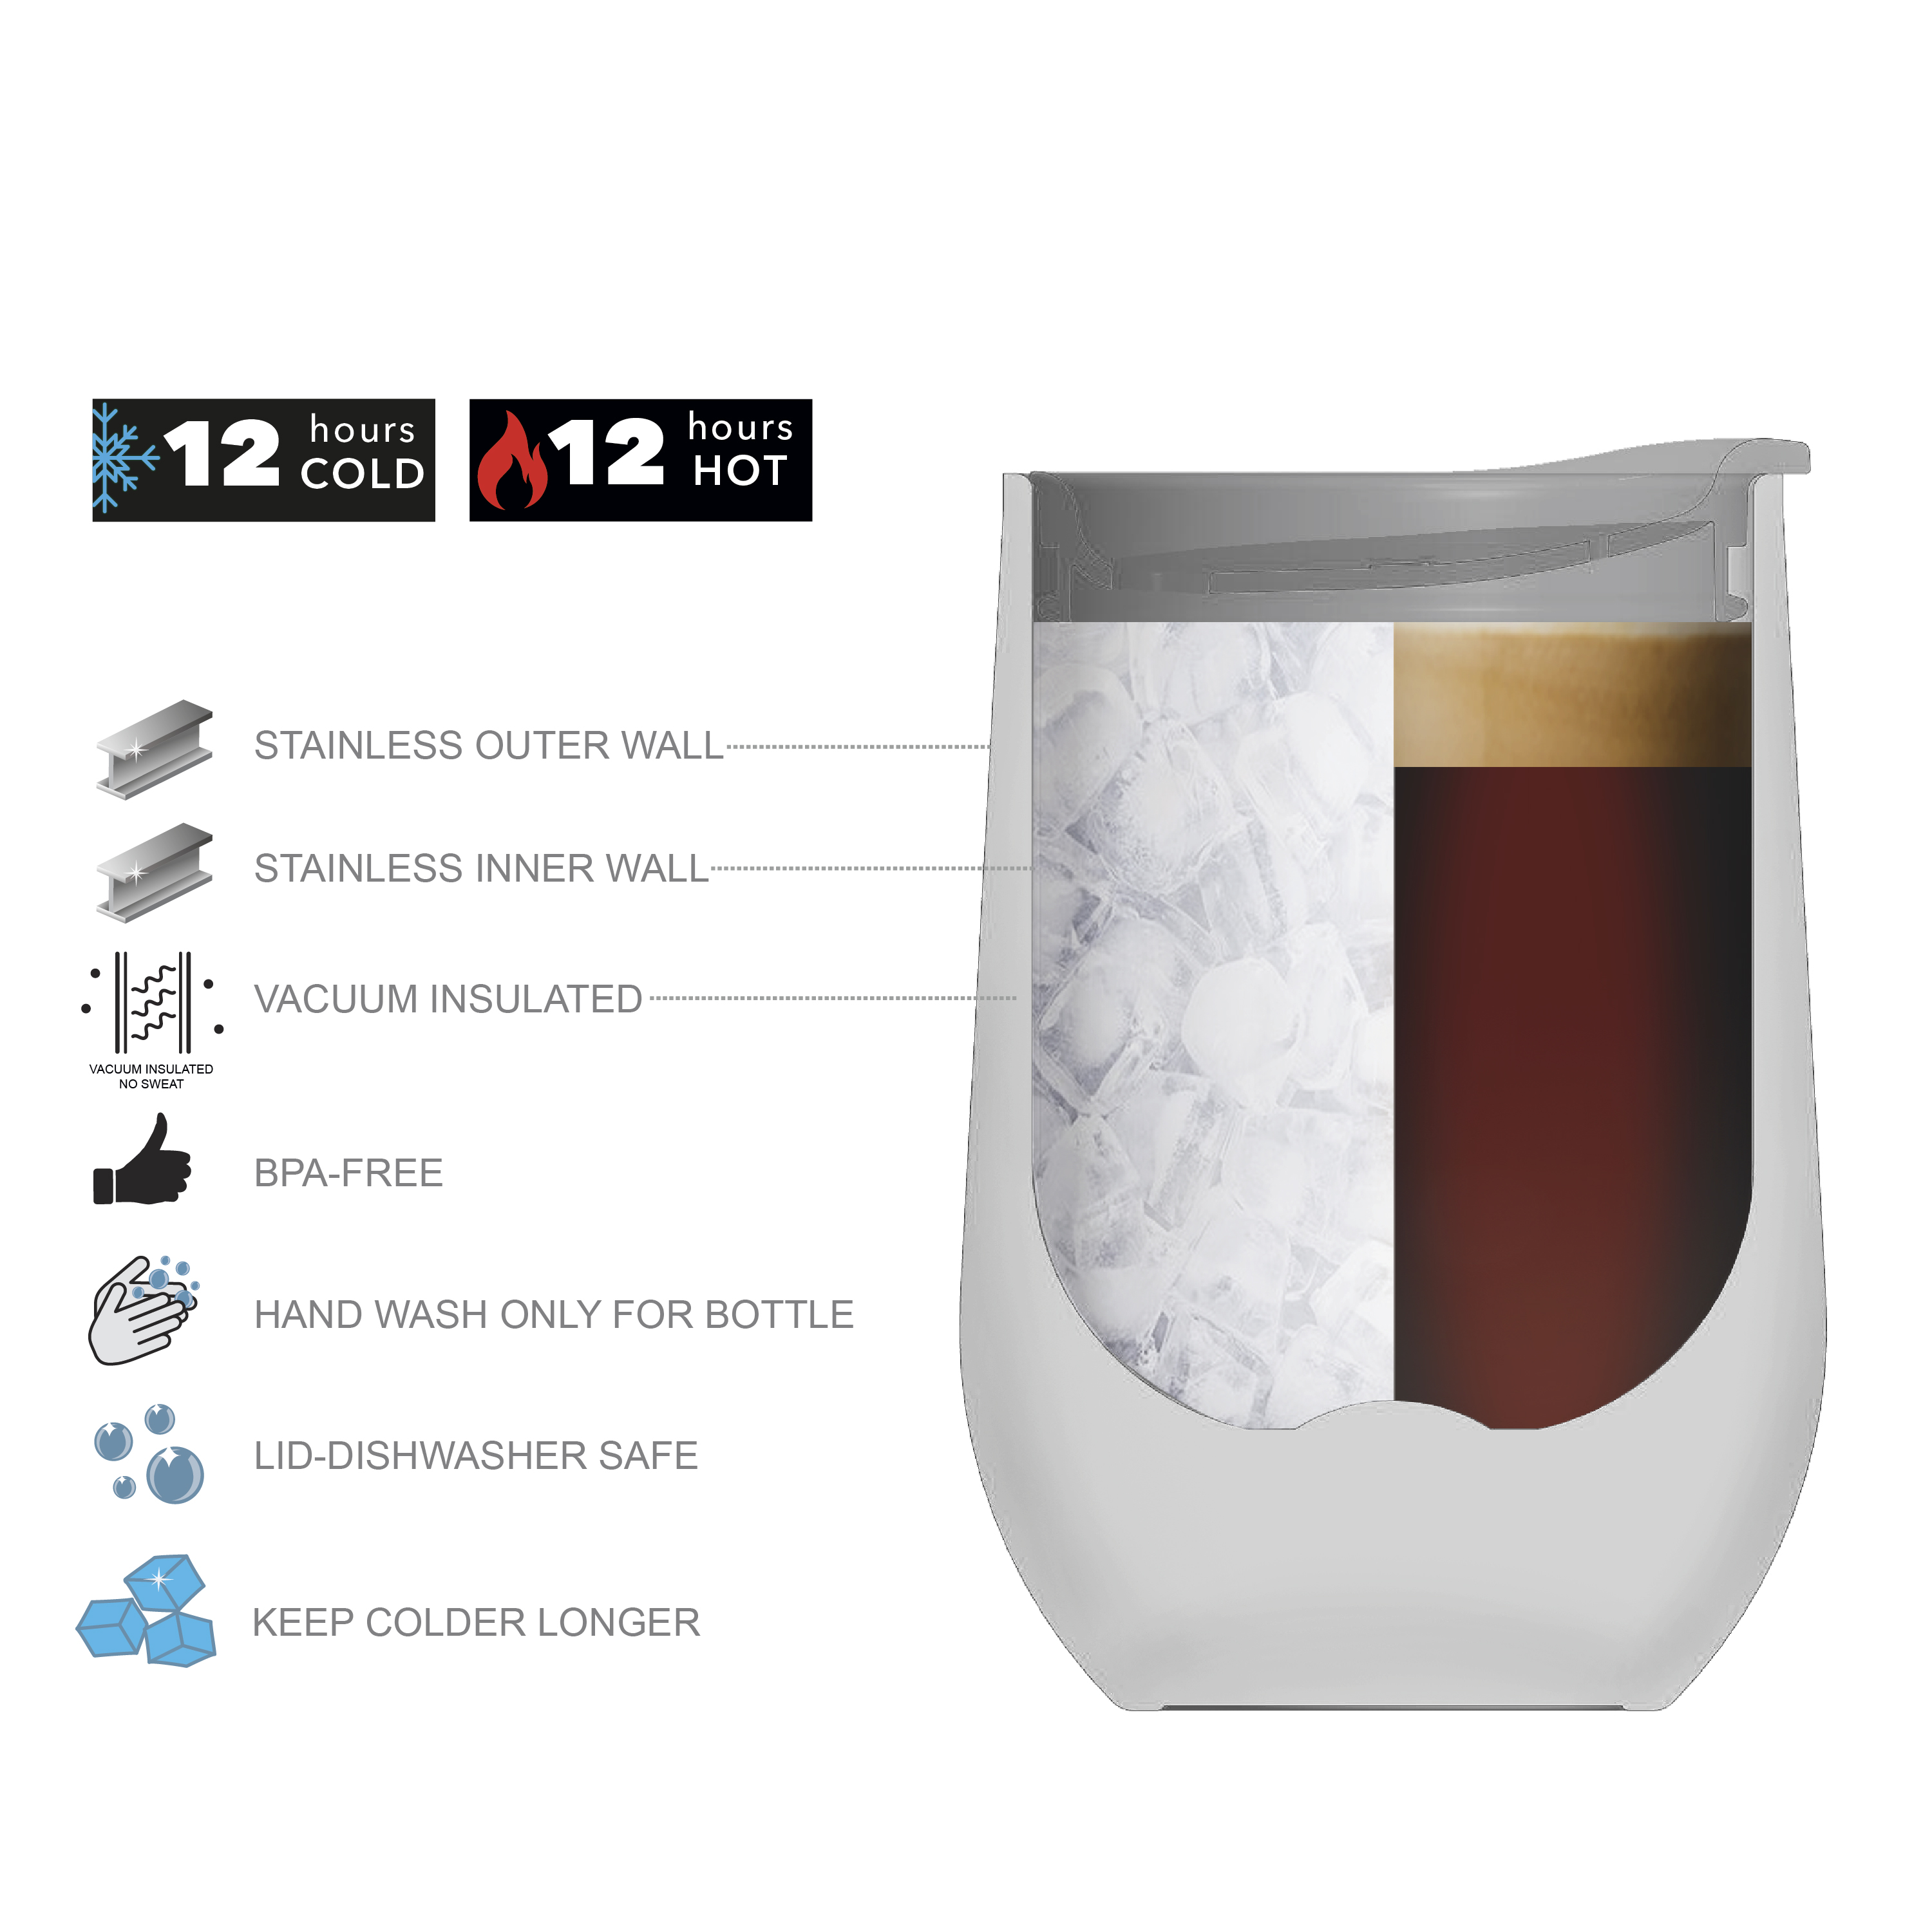 Zak Hydration 11.5 ounce Insulated Stainless Steel Tumbler, Vin Scully, 2-piece set slideshow image 5